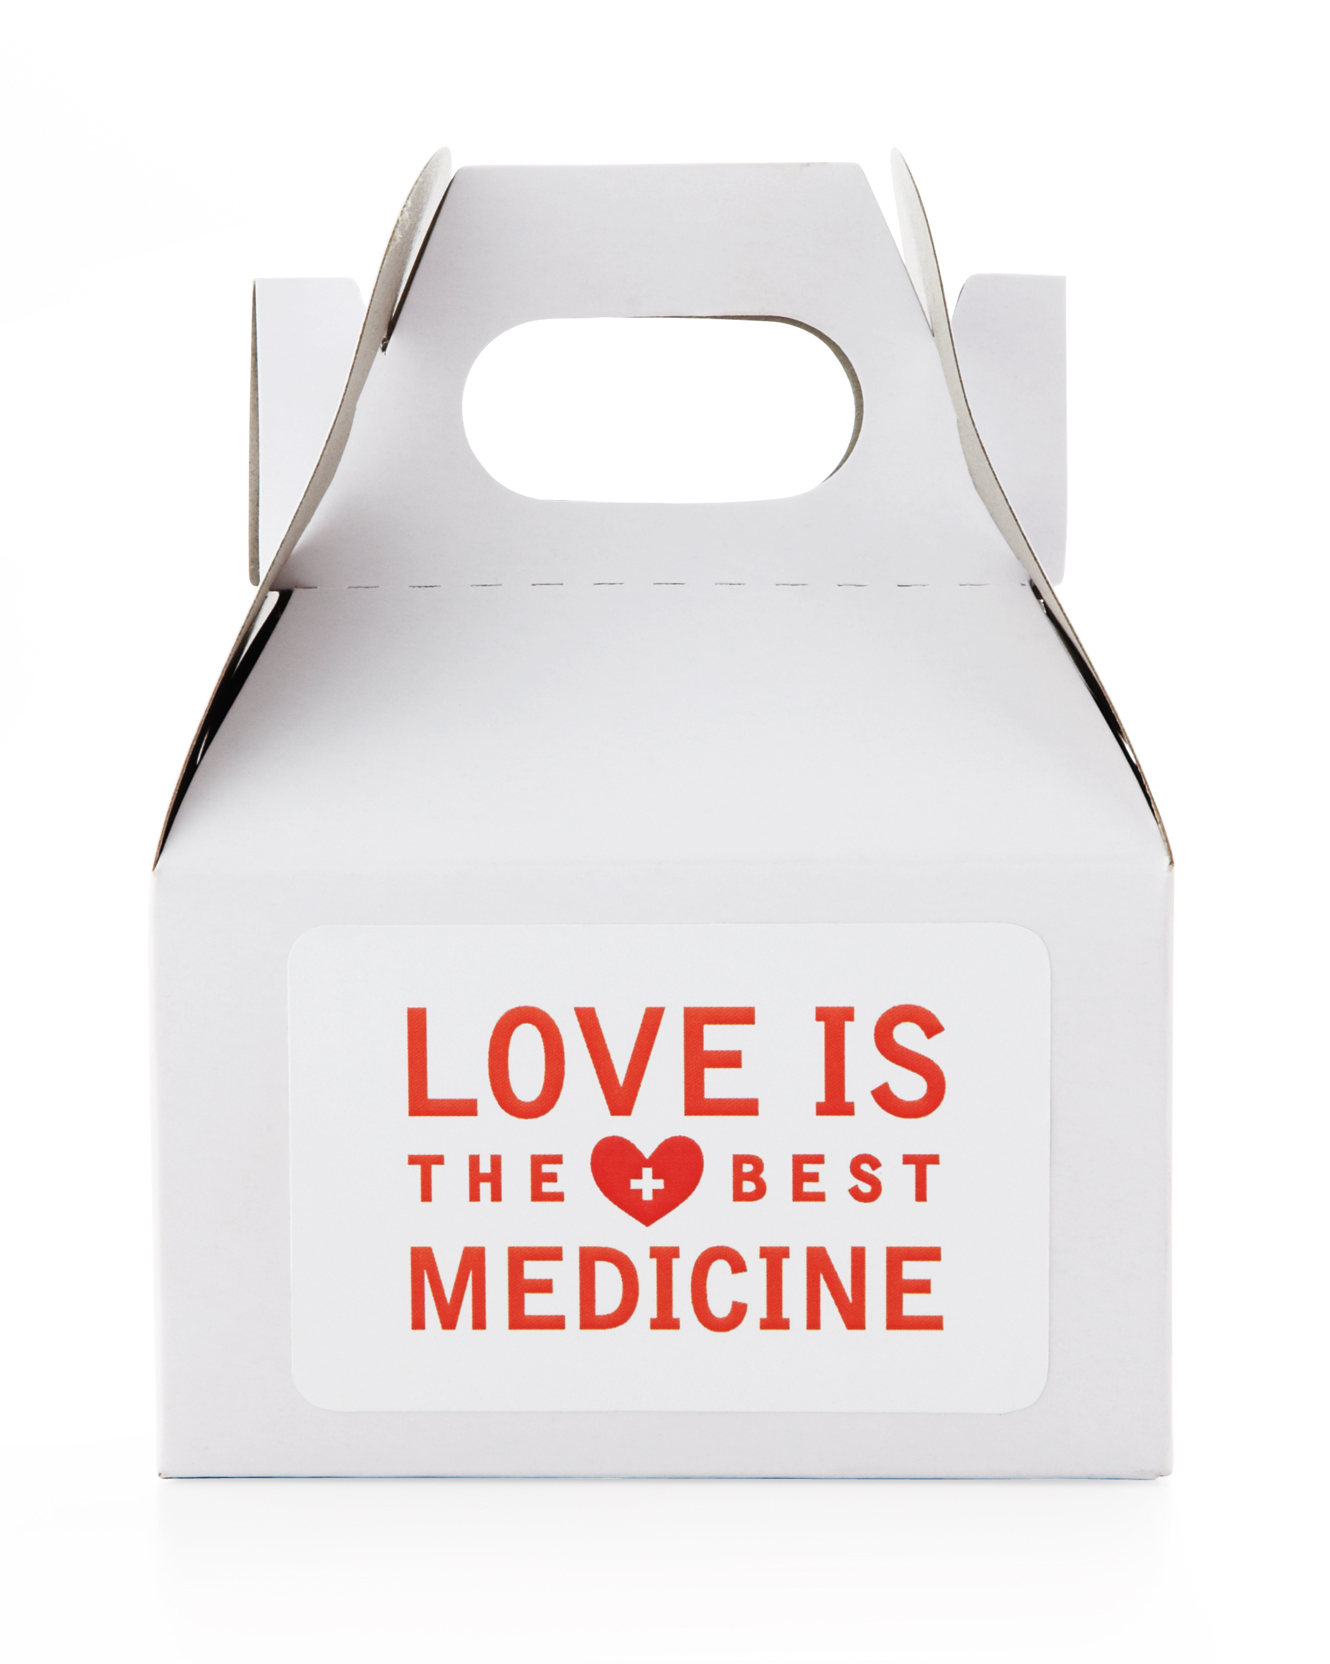 Love Is the Best Medicine  Favor Box Sticker